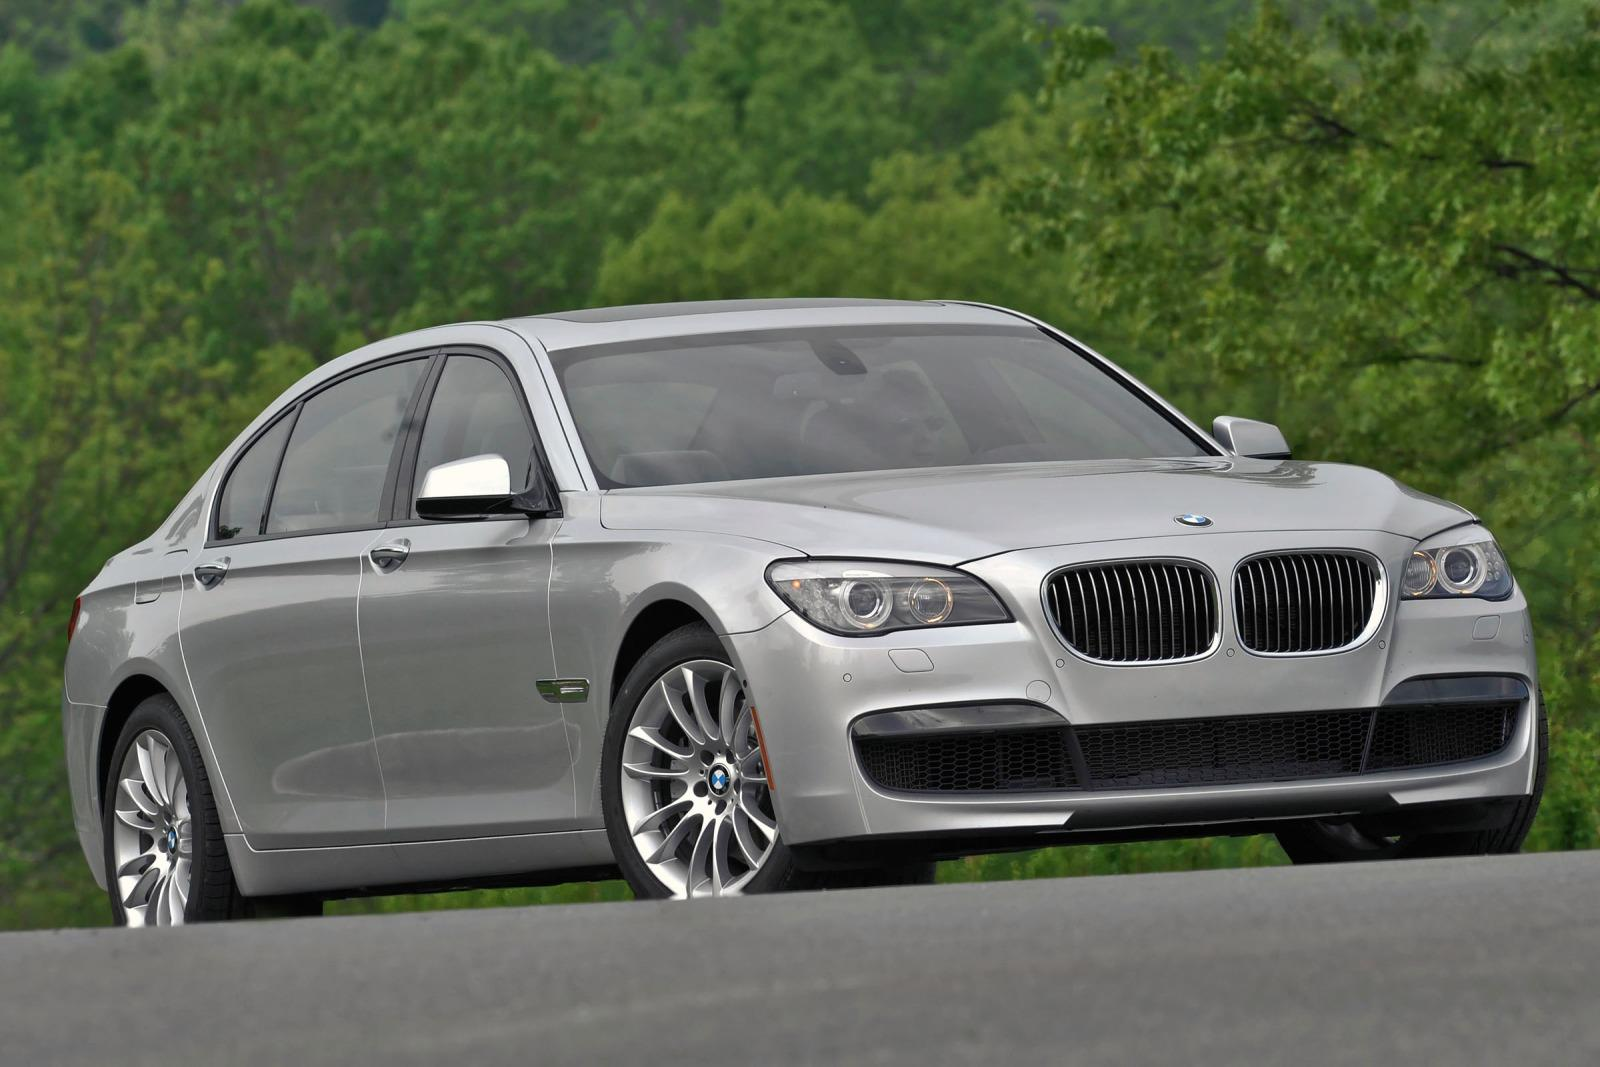 2011 bmw 7 series information and photos zombiedrive. Black Bedroom Furniture Sets. Home Design Ideas